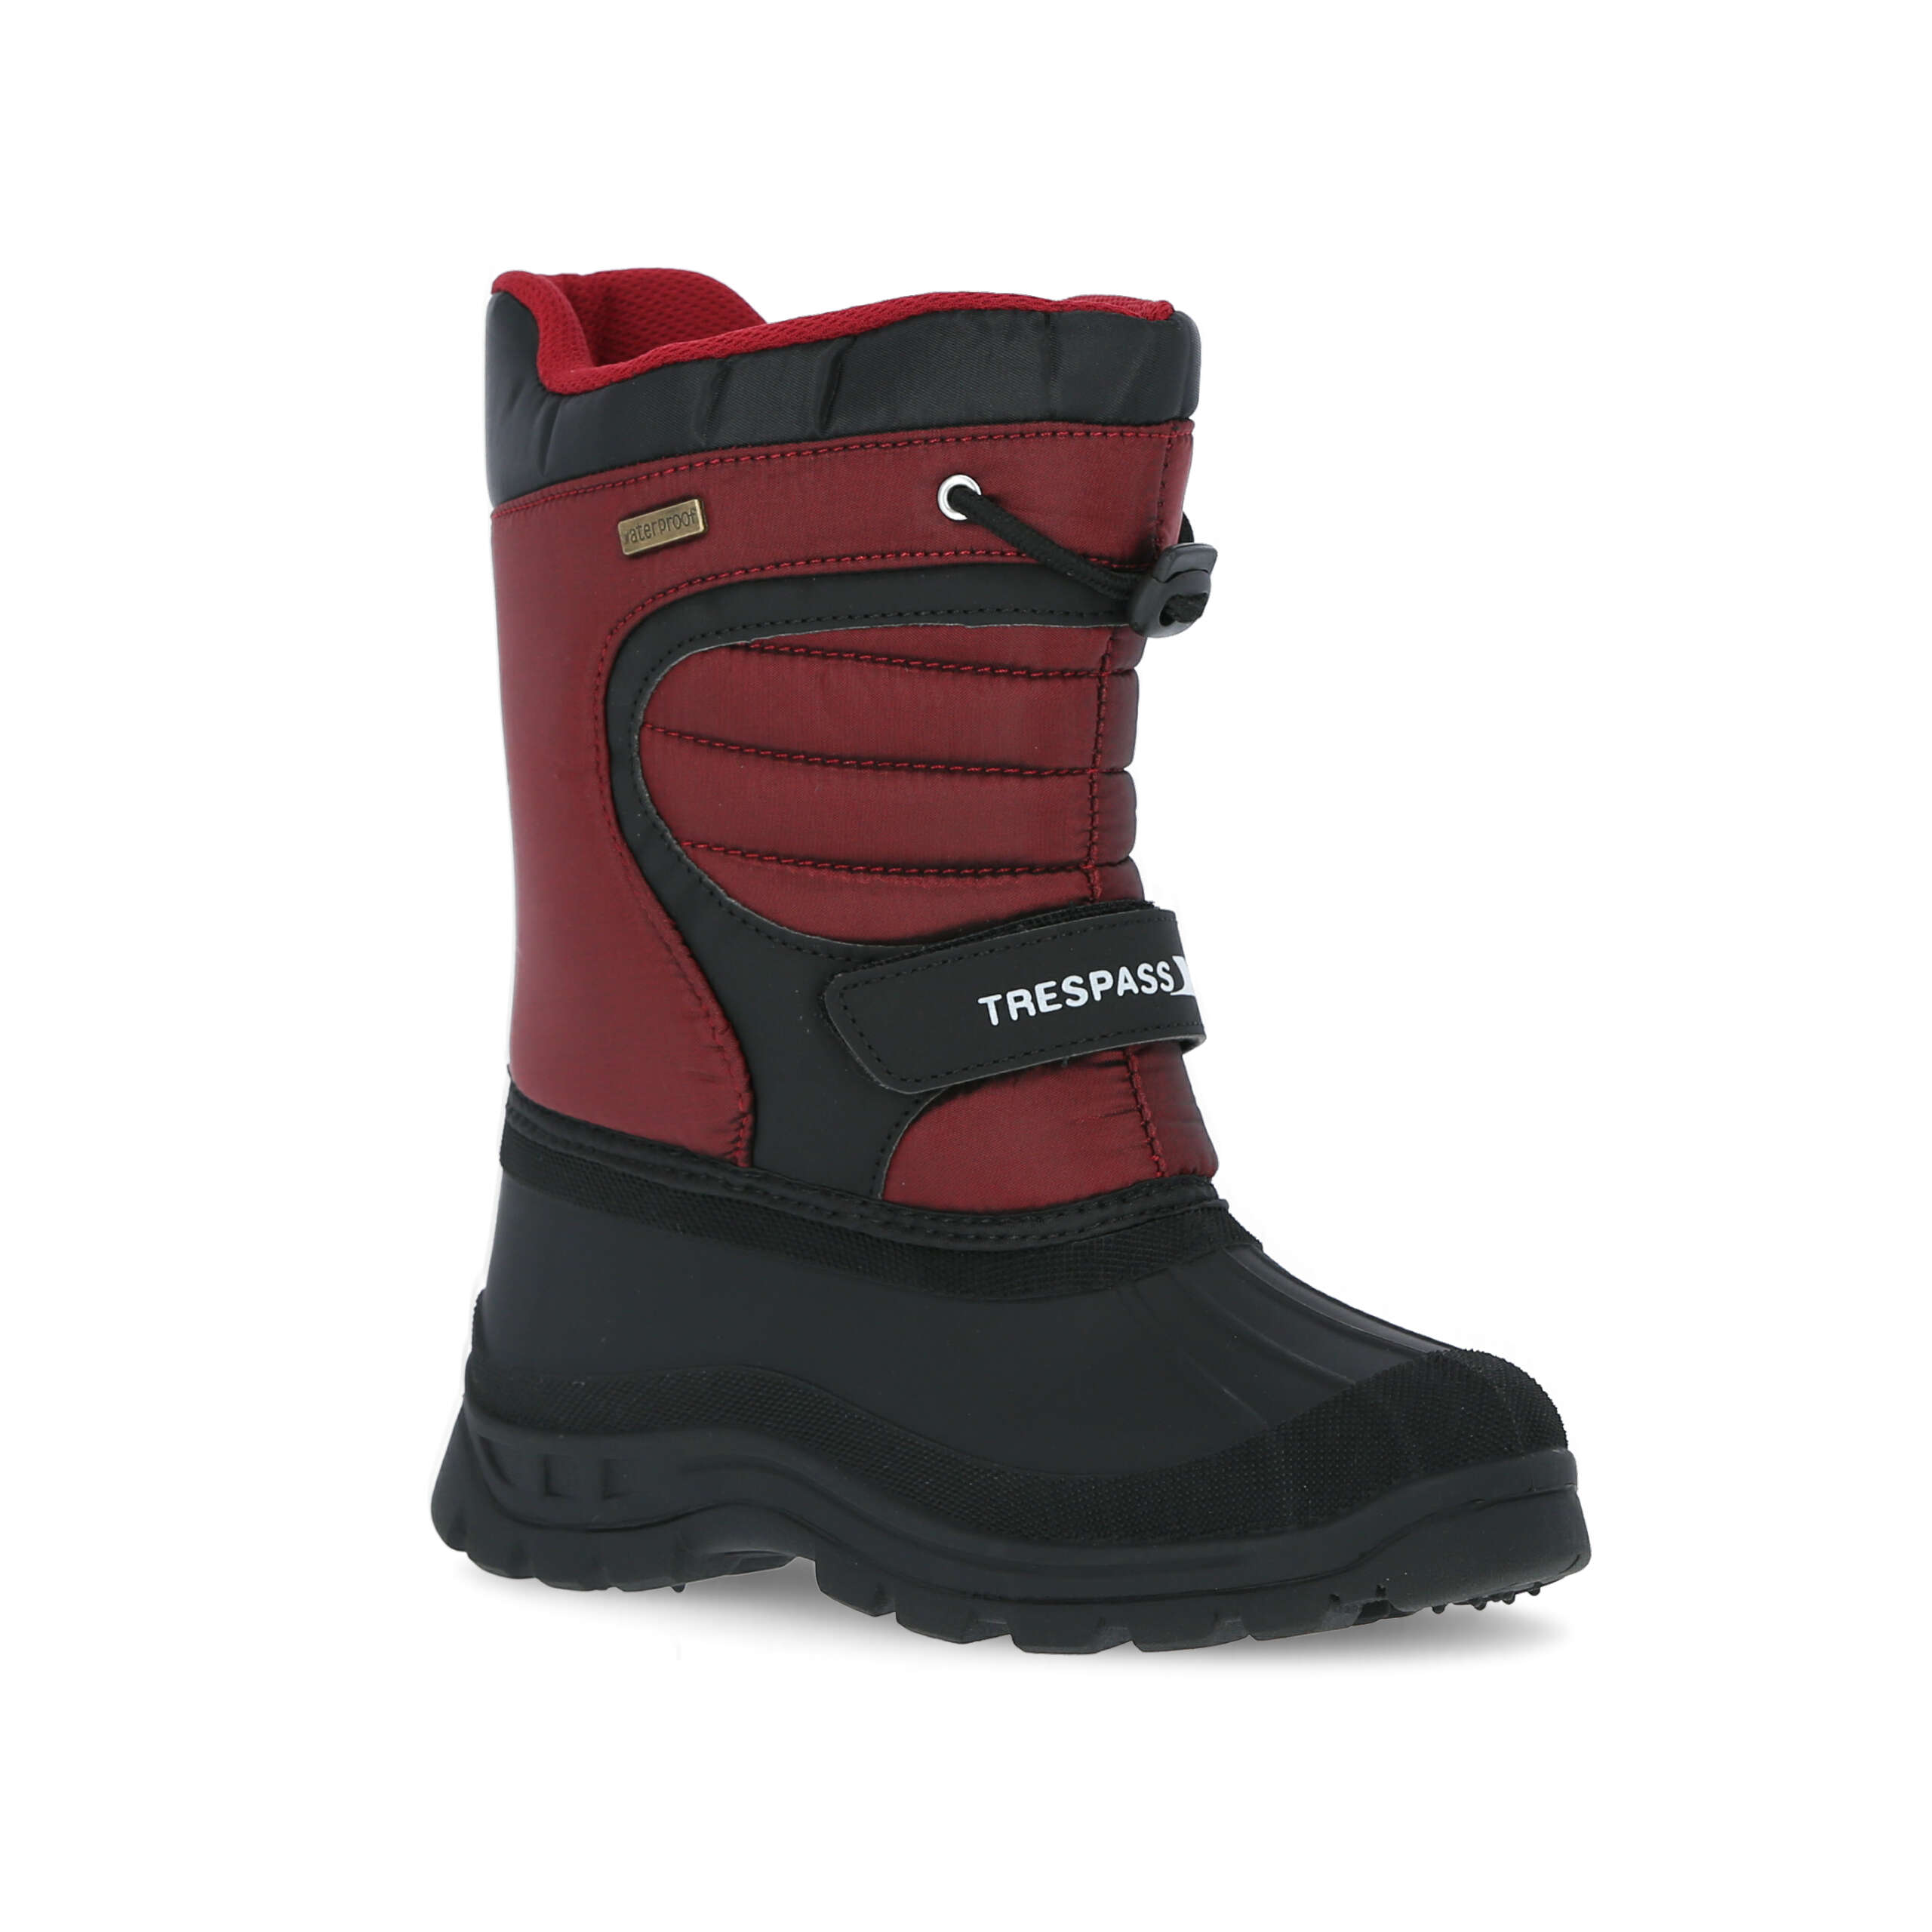 thumbnail 18 - Trespass Dodo Youth Kids Water Resistant Snow Boots in Black Winter Warm